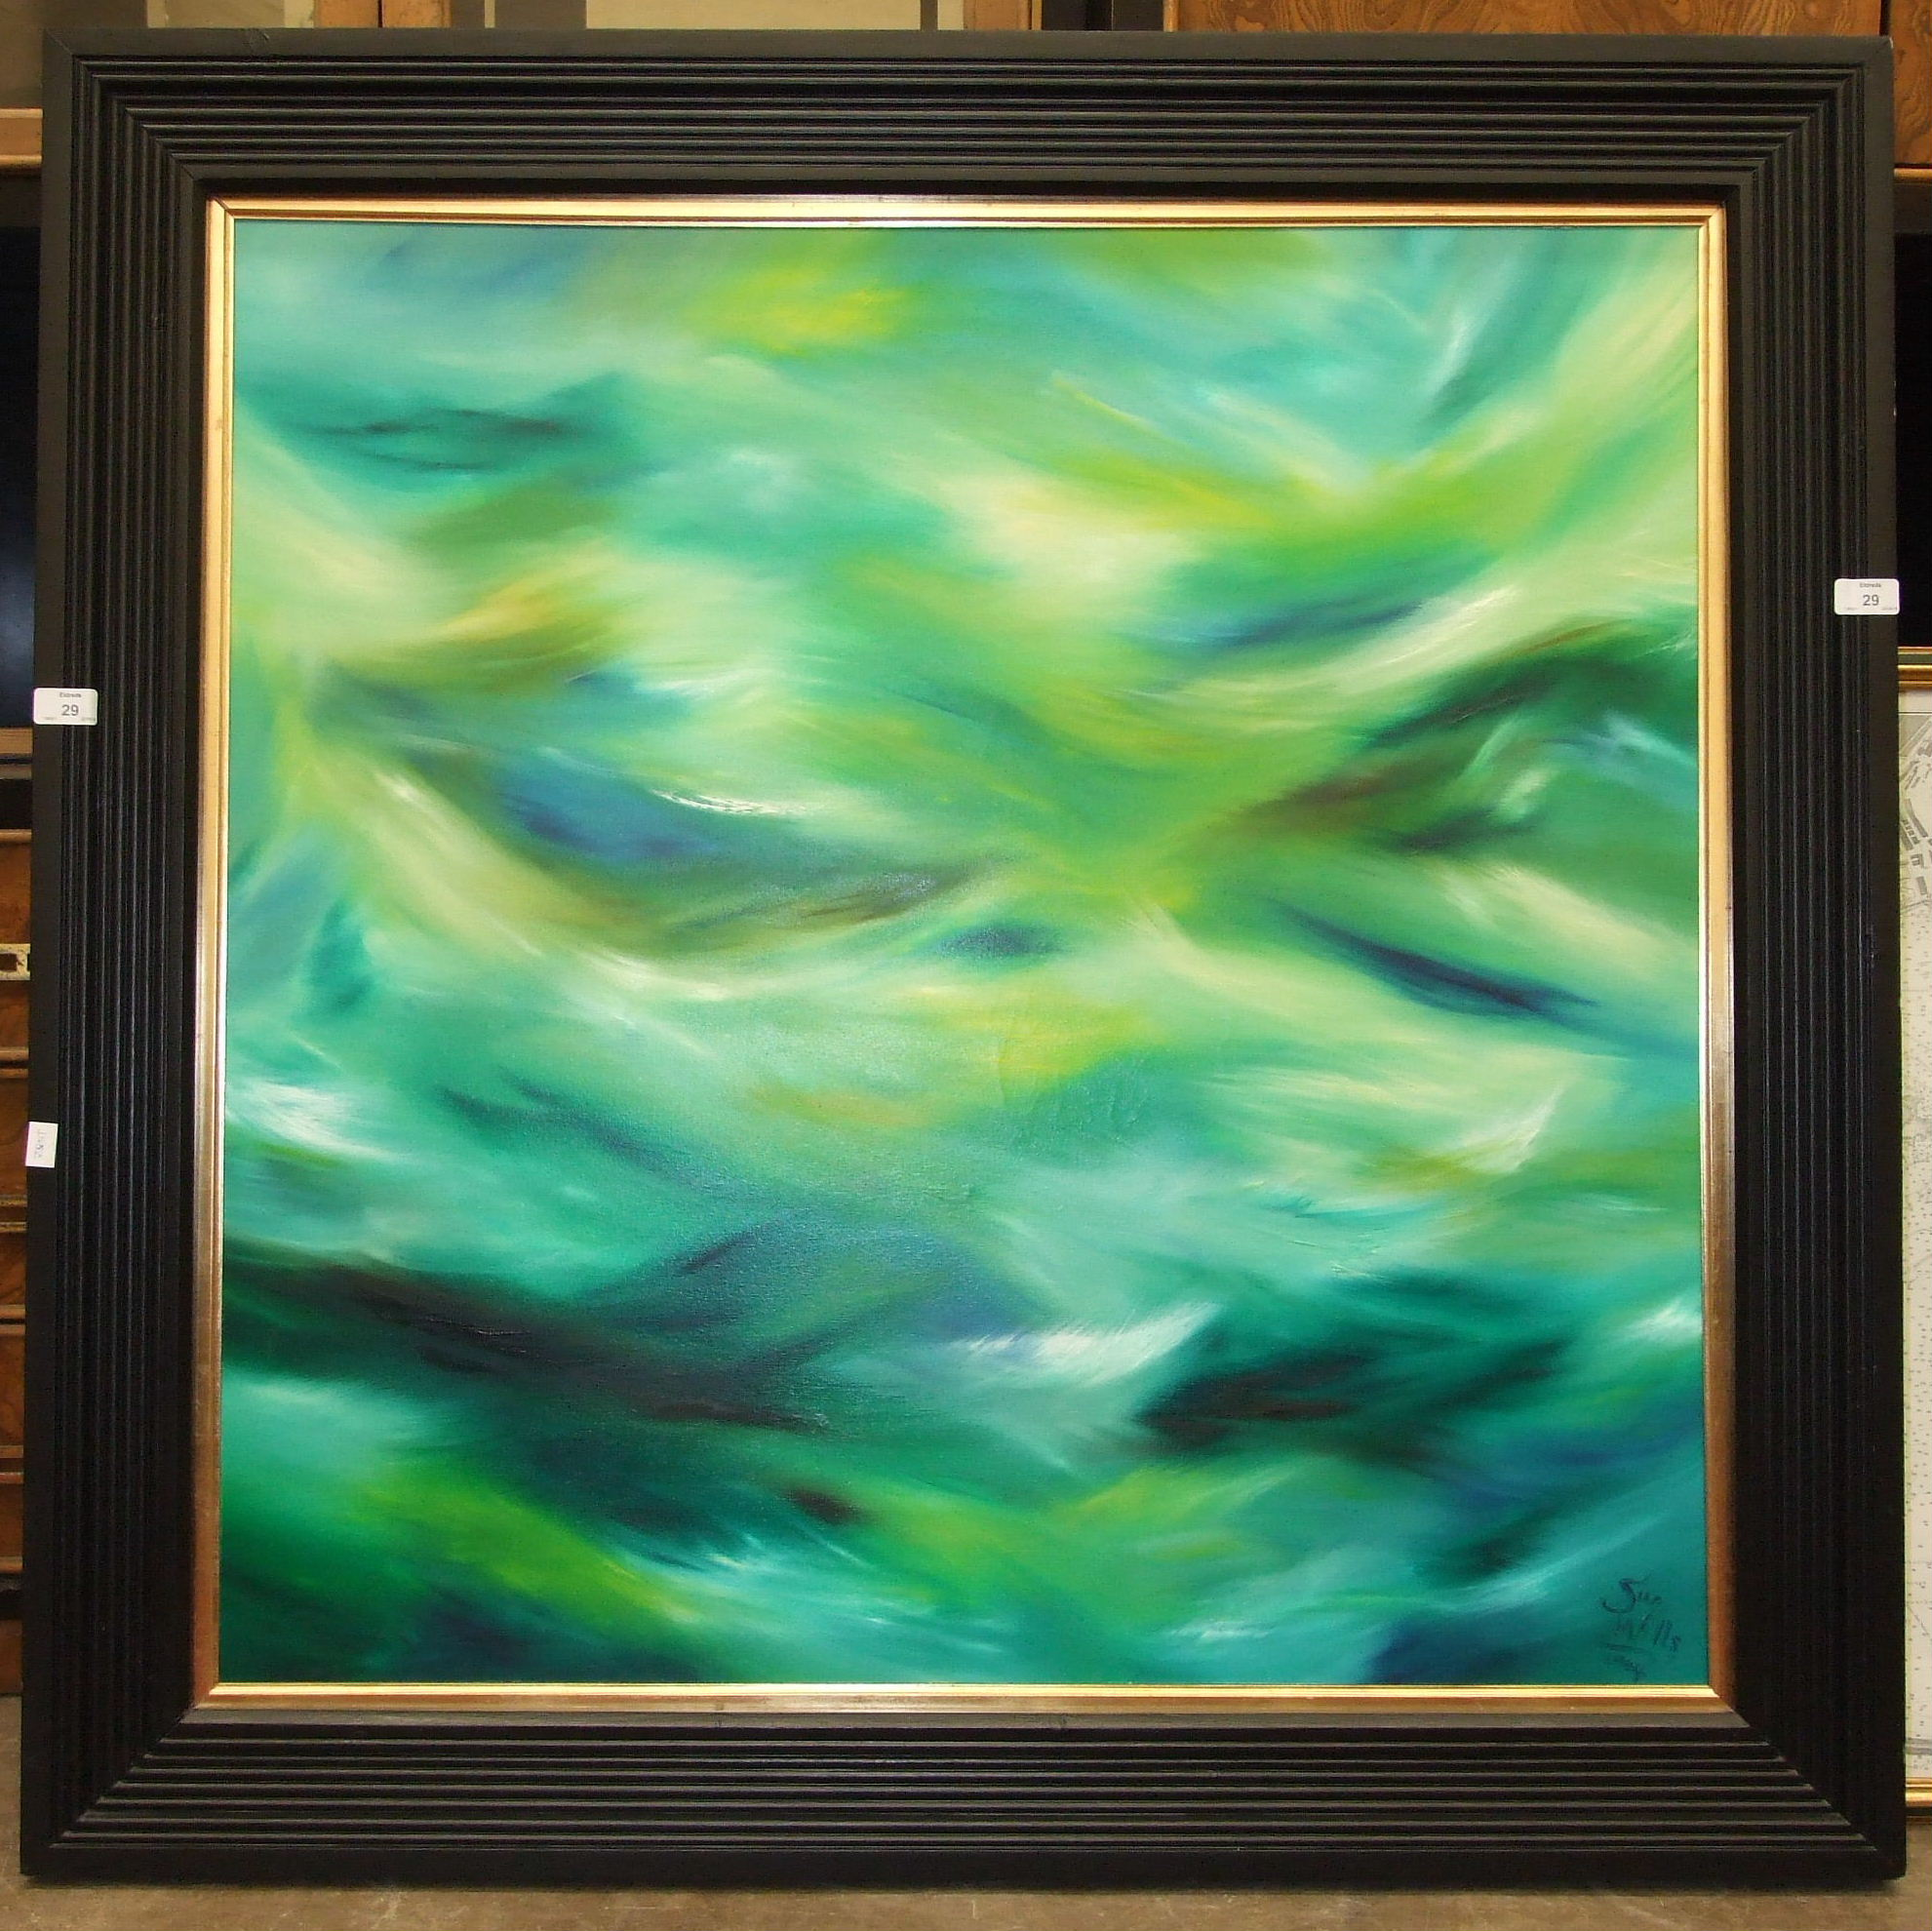 •Sue Wills (b. 1962) ABSTRACT, GREEN, BLUE, YELLOW, BLACK AND WHITE WAVES Signed oil on canvas,